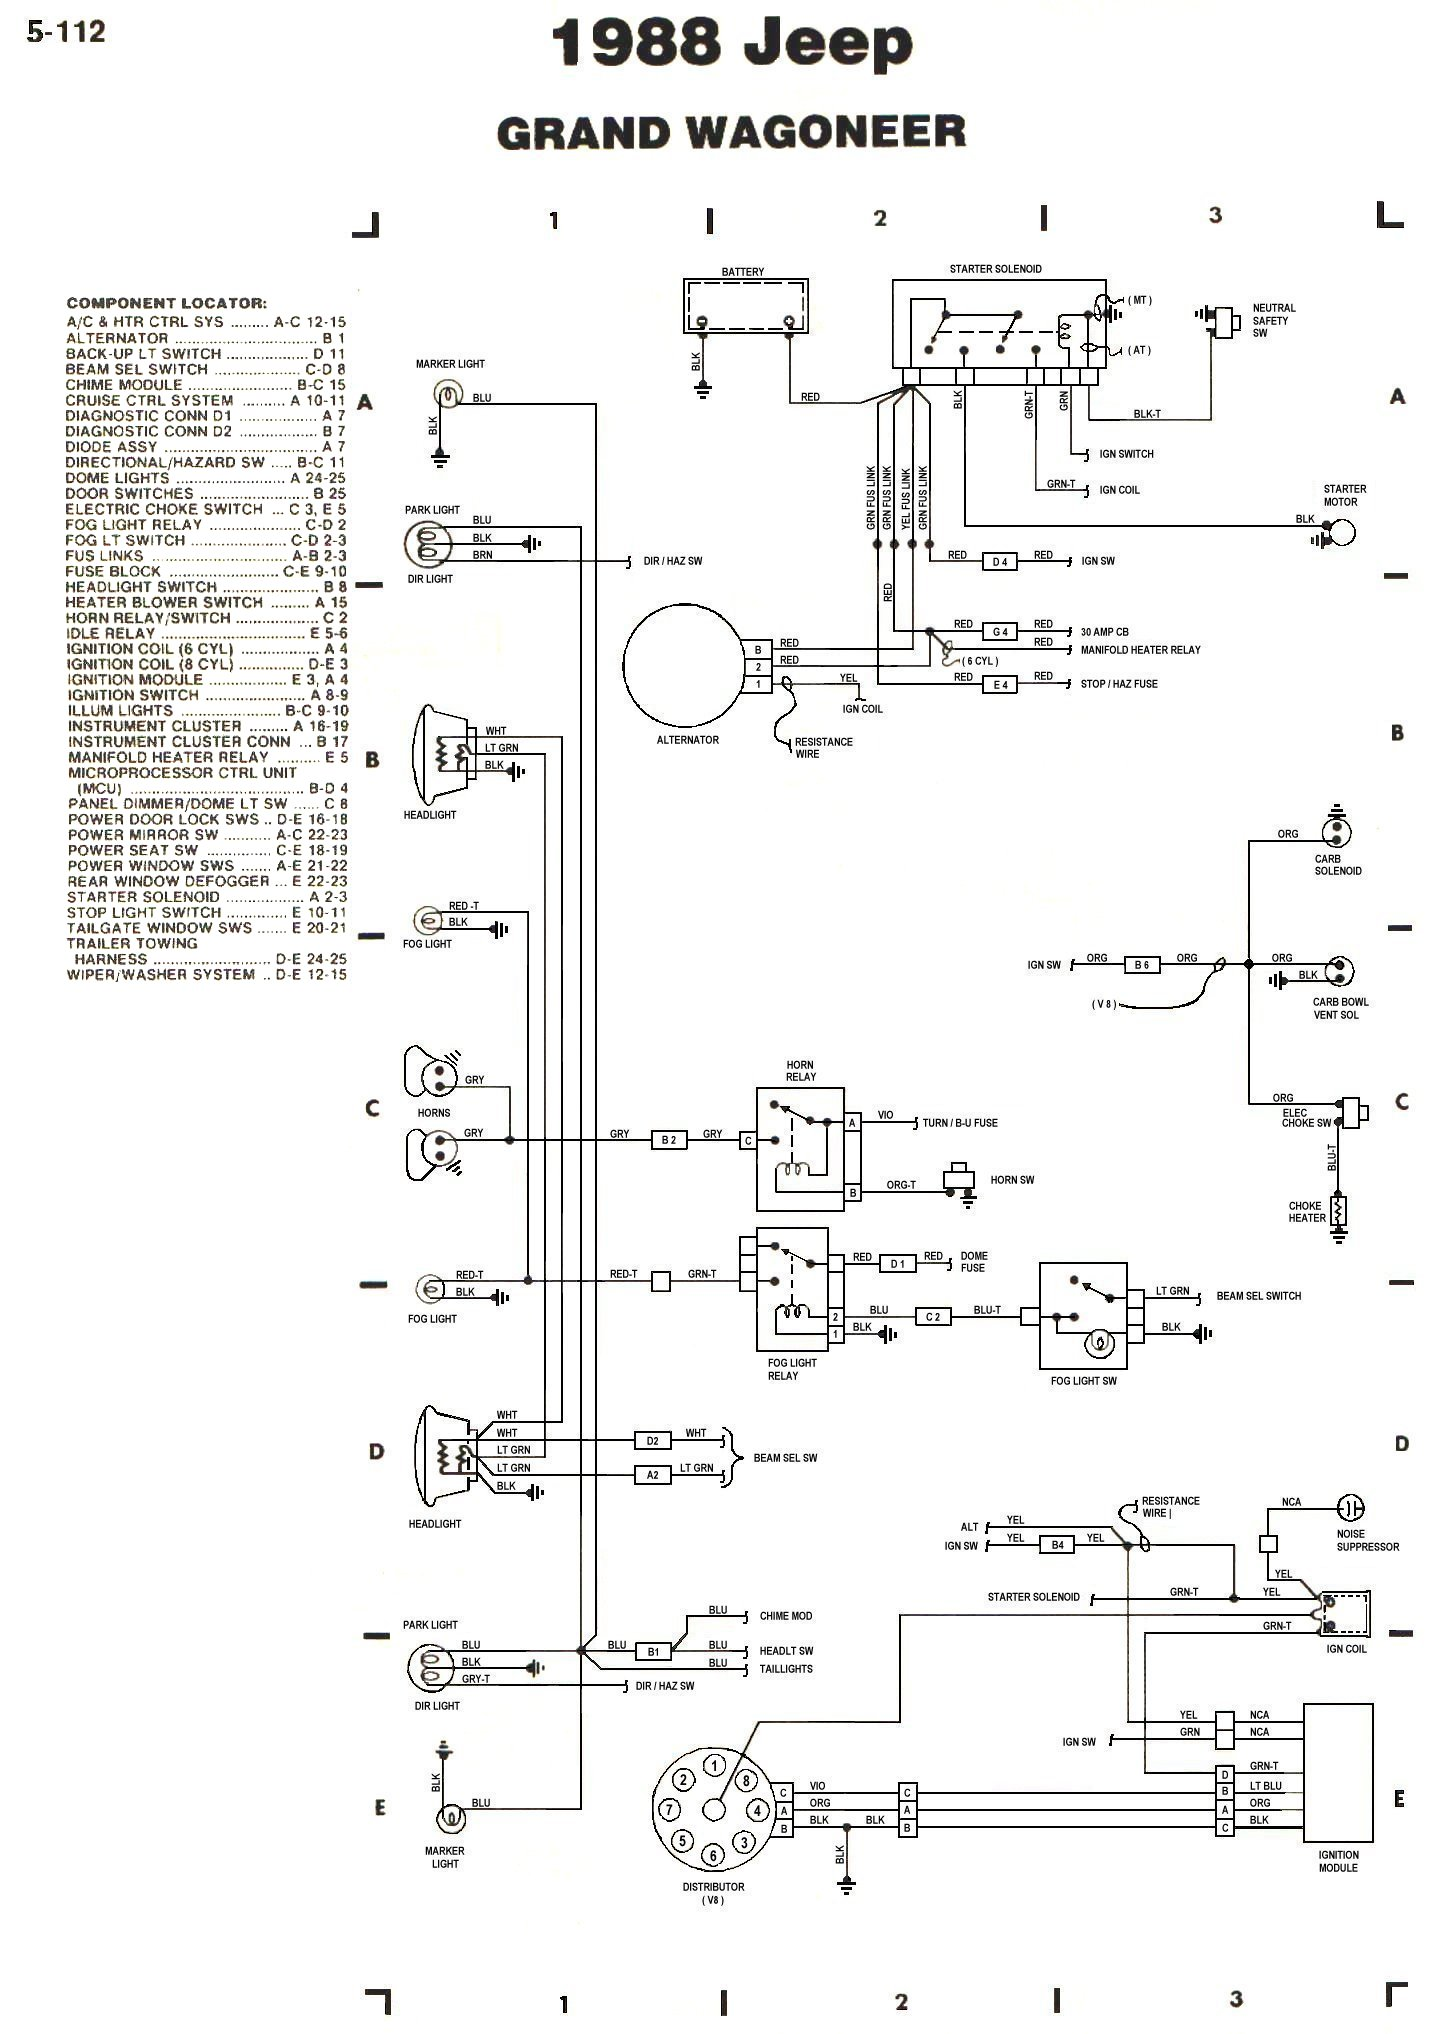 Jk Power Window Wiring Harness | Wiring Diagram Database on transformer schematics, motor schematics, electronics schematics, ductwork schematics, plumbing schematics, wire schematics, ford diagrams schematics, computer schematics, generator schematics, tube amp schematics, circuit schematics, ignition schematics, ecu schematics, electrical schematics, transmission schematics, design schematics, engineering schematics, amplifier schematics, engine schematics, piping schematics,